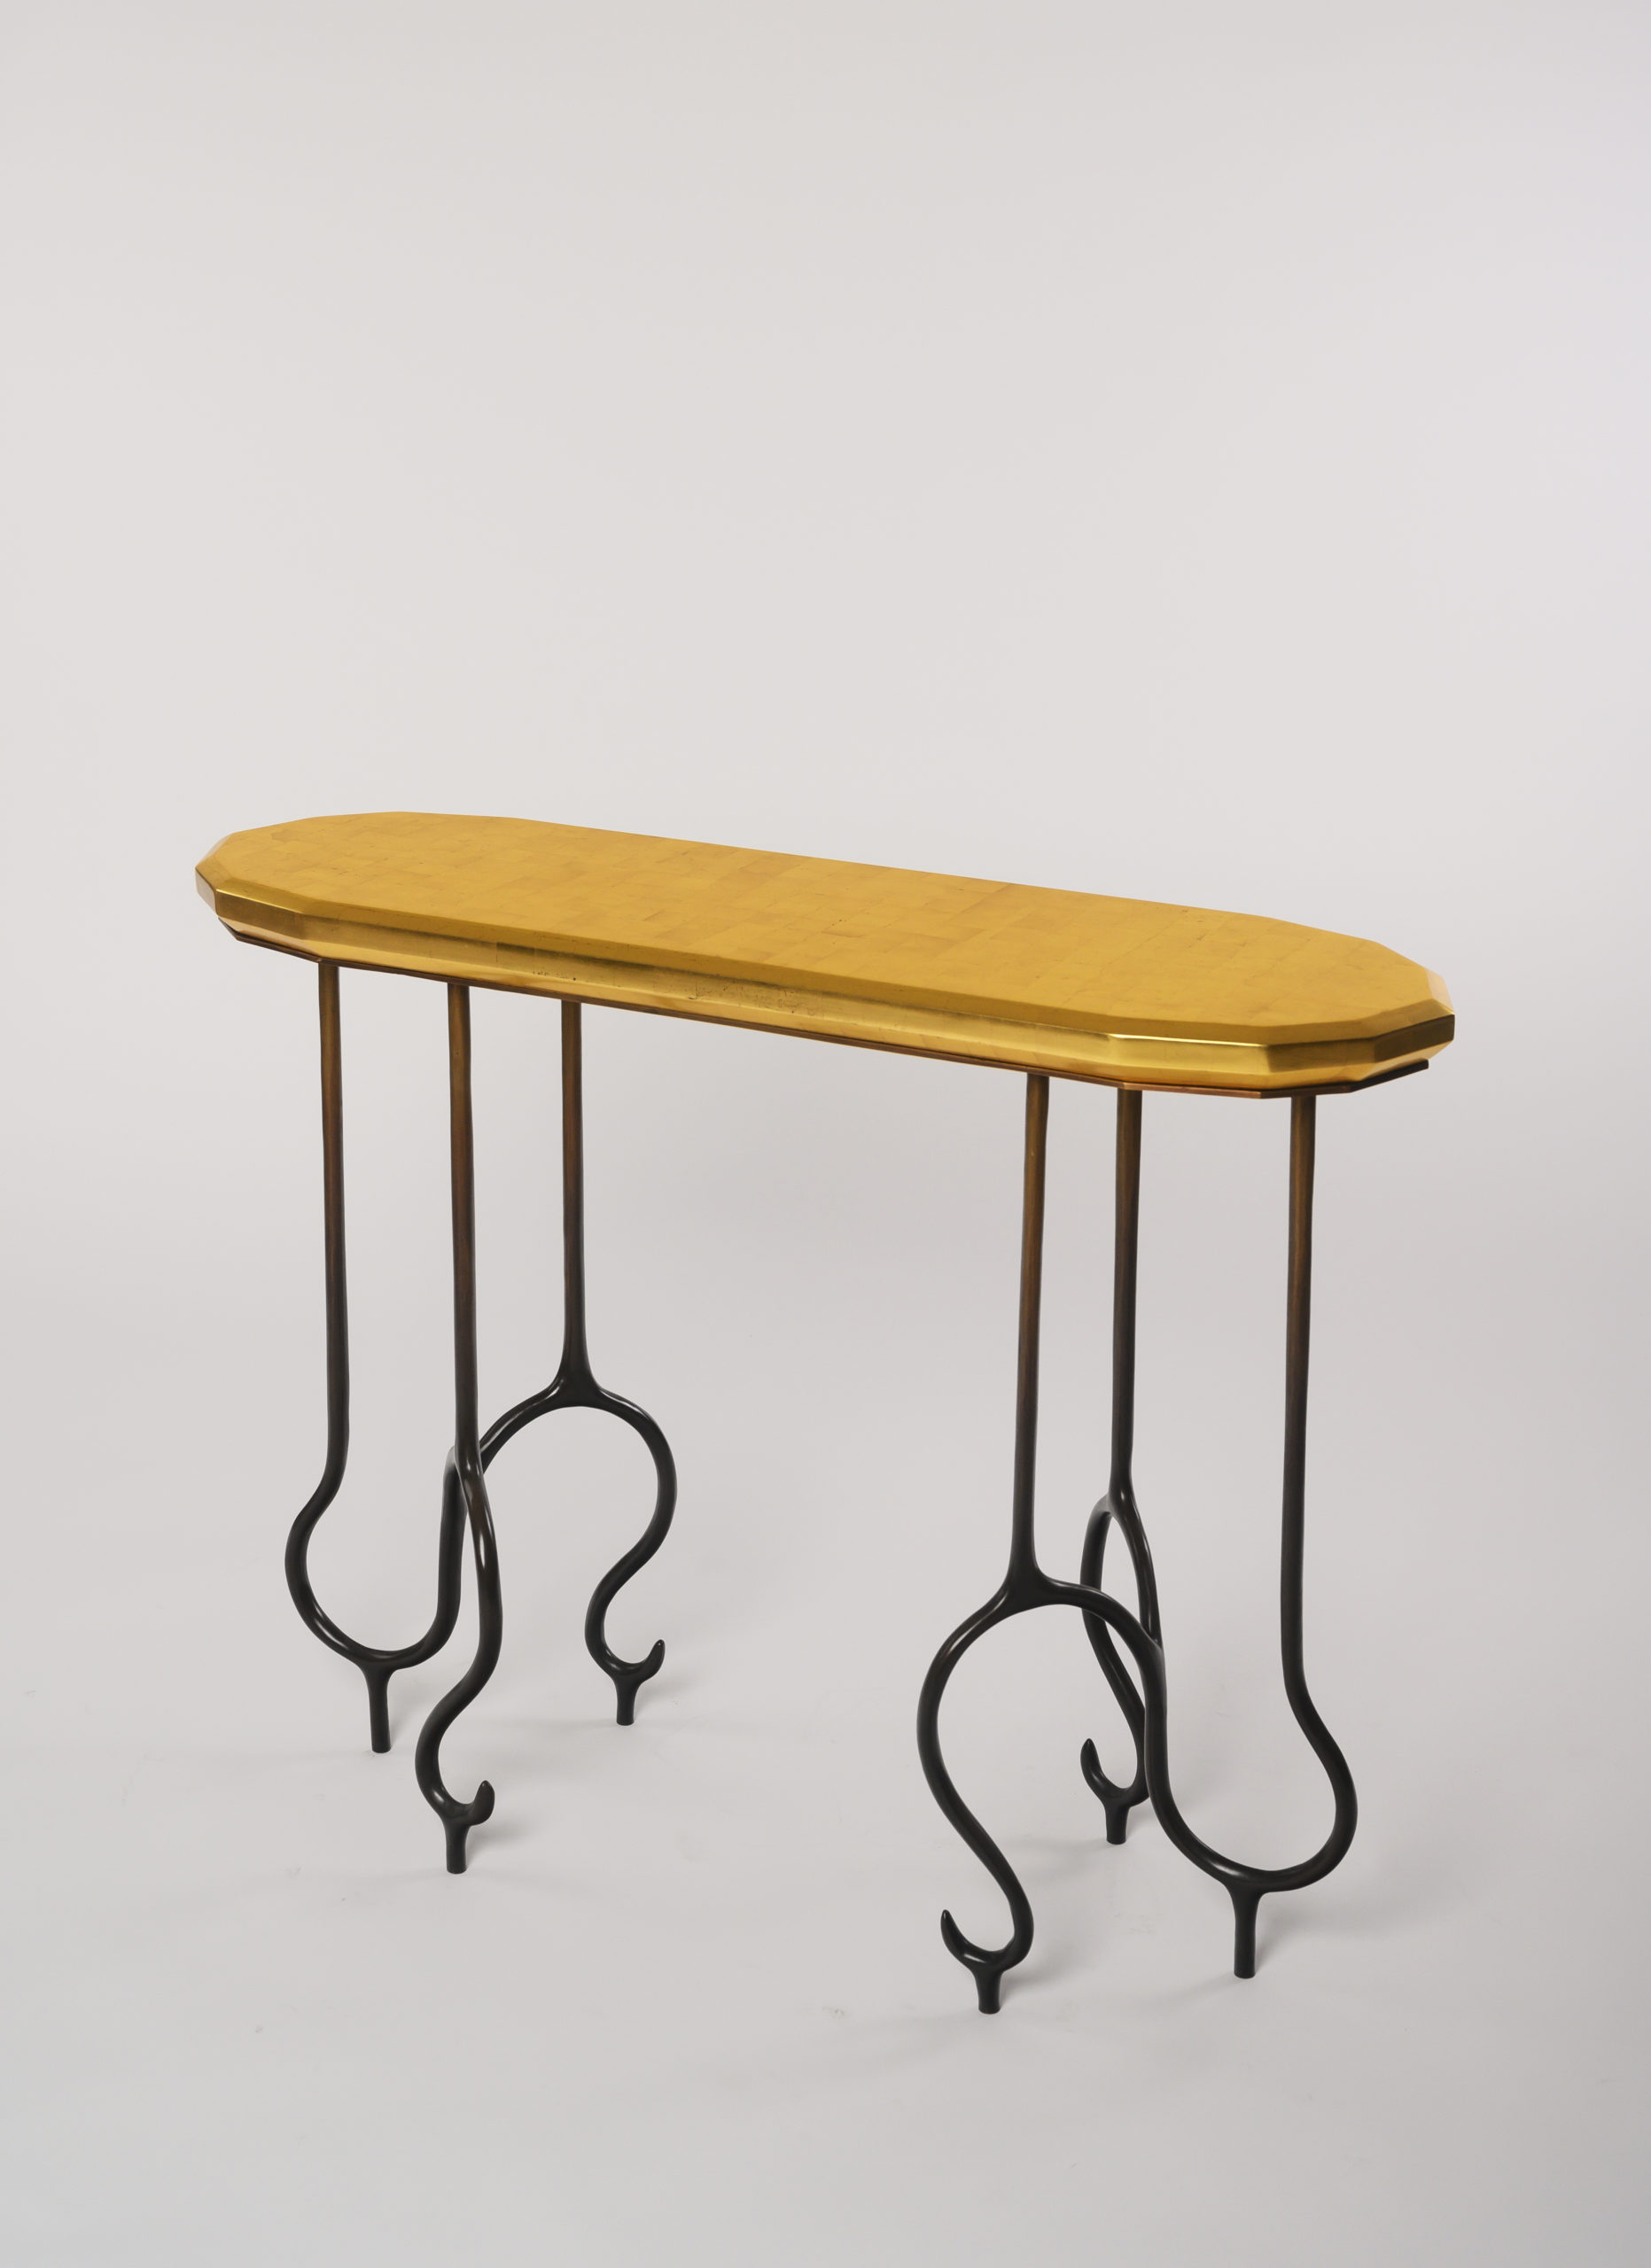 NYDC_WNWN_products_david_sutherland_elan_atelier_Faroh_Console_BEE_5106